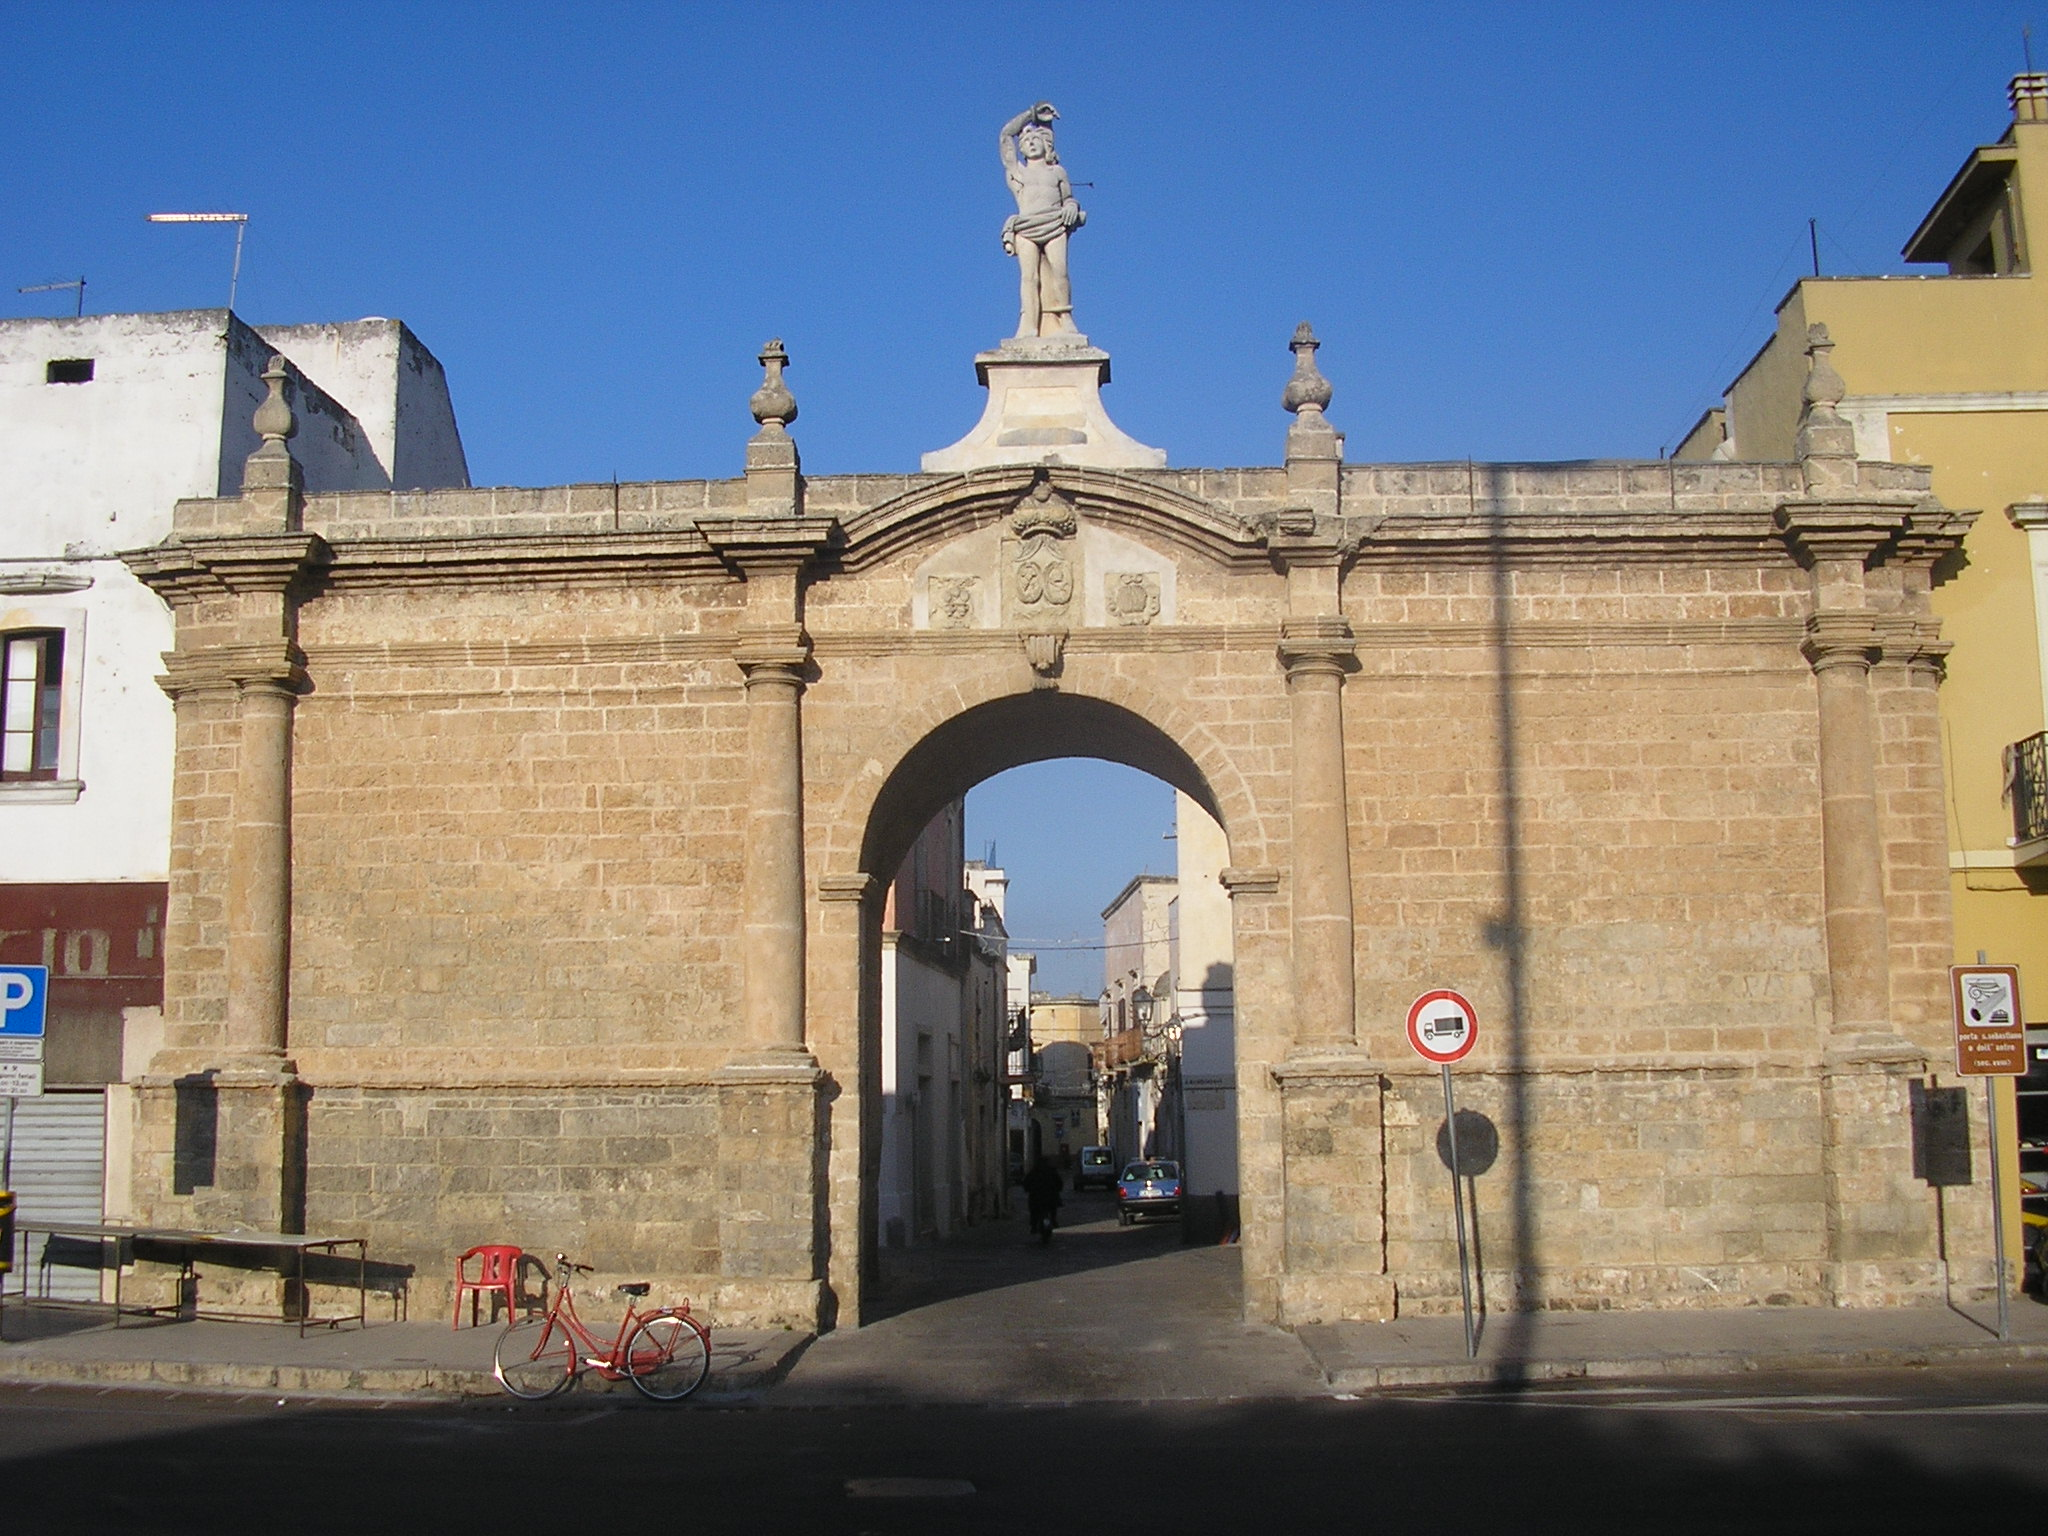 Porta San Sebastiano, built in 1748, is the main gate to the old town.